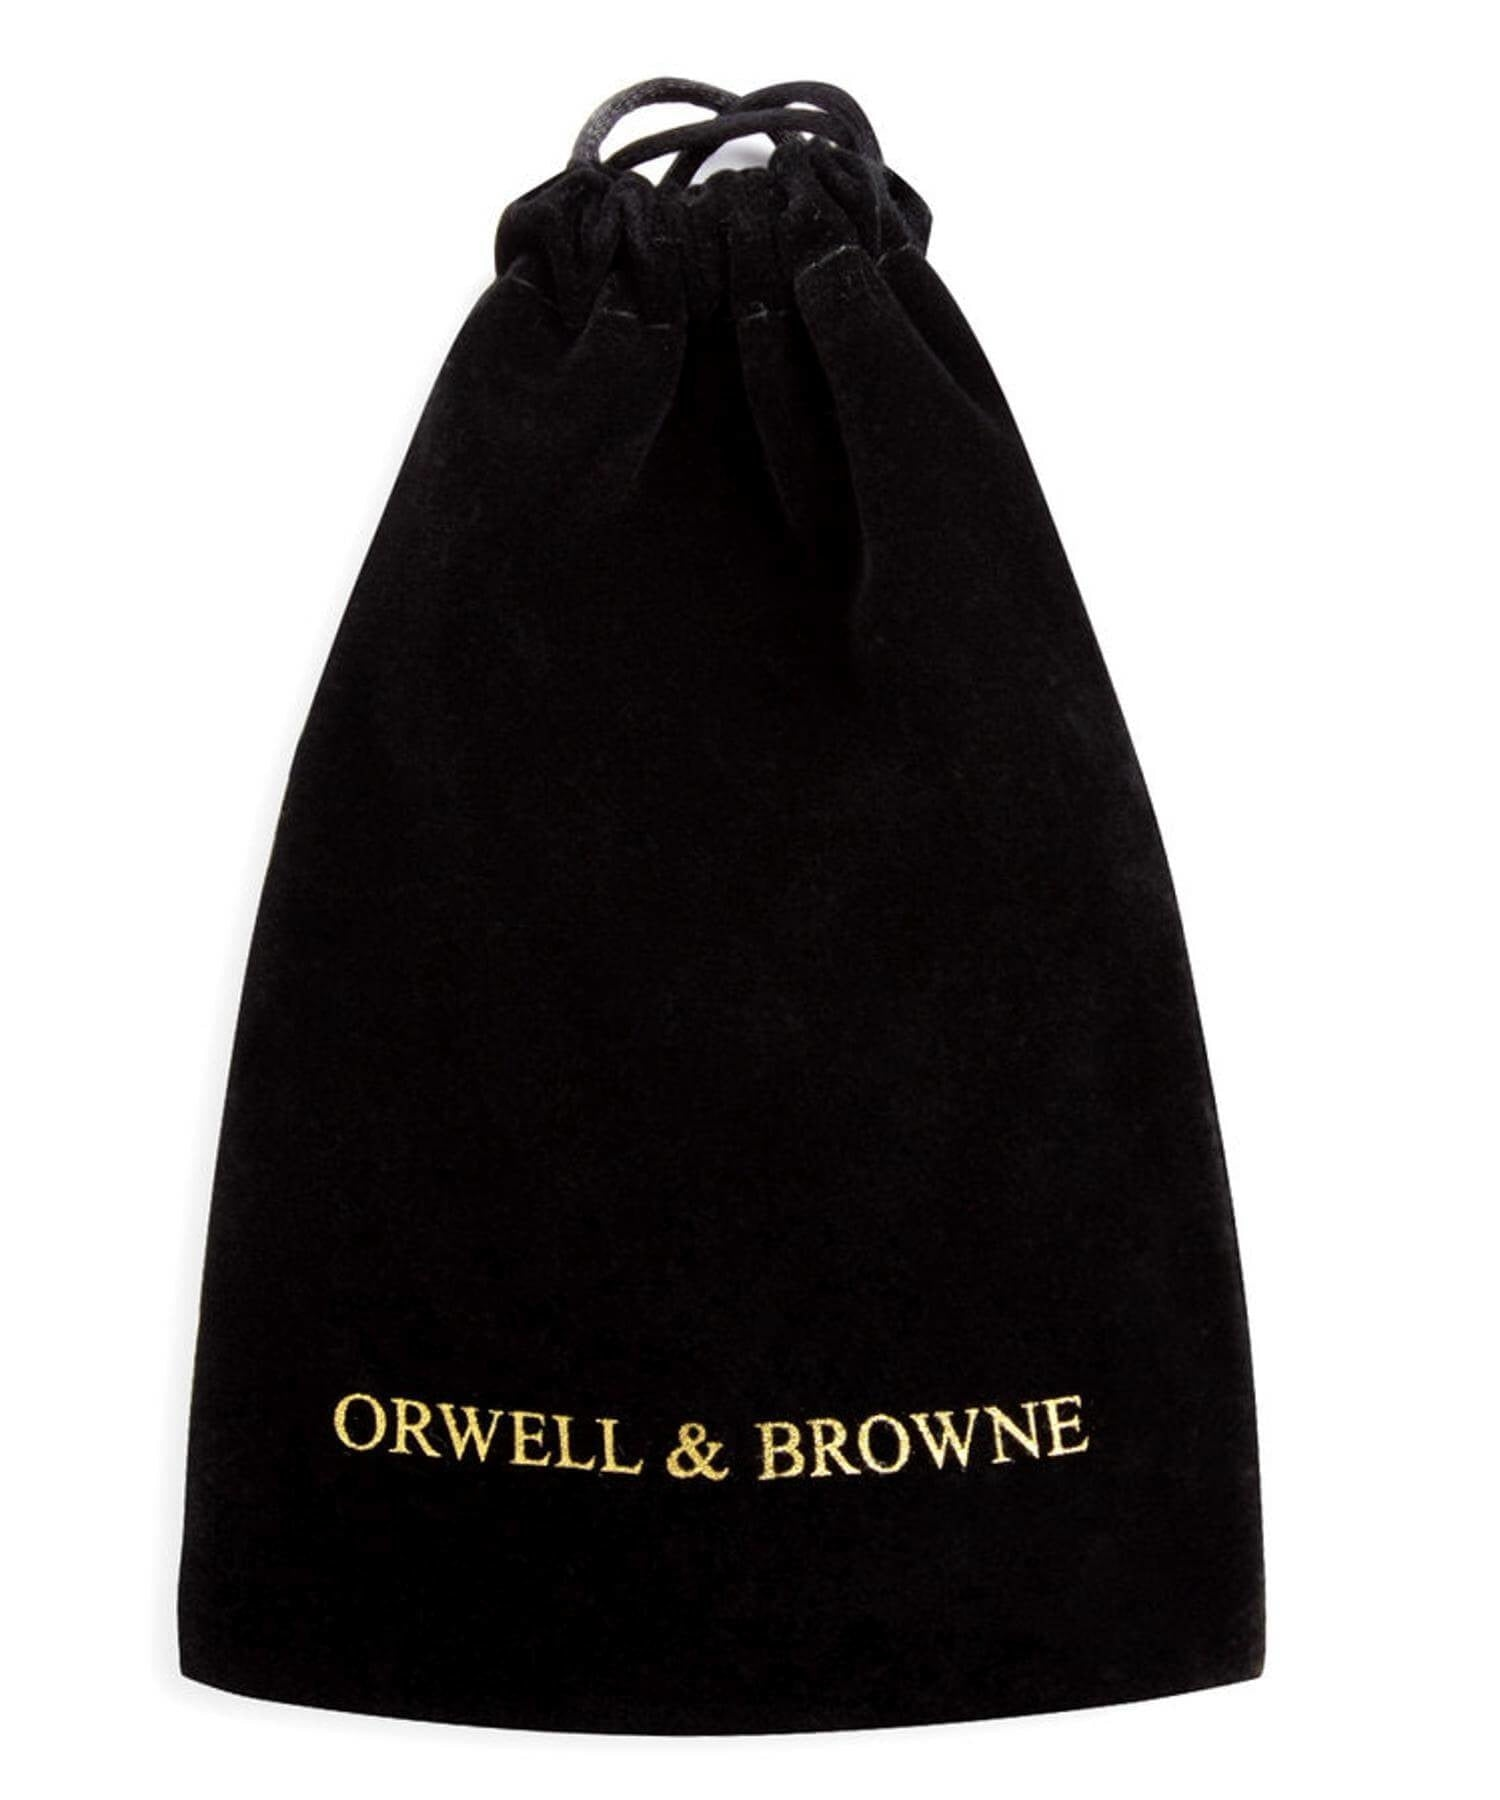 Donegal Tweed Tie - Pinstripe - [Orwell & Browne] - Mens Accessories - Irish Gifts